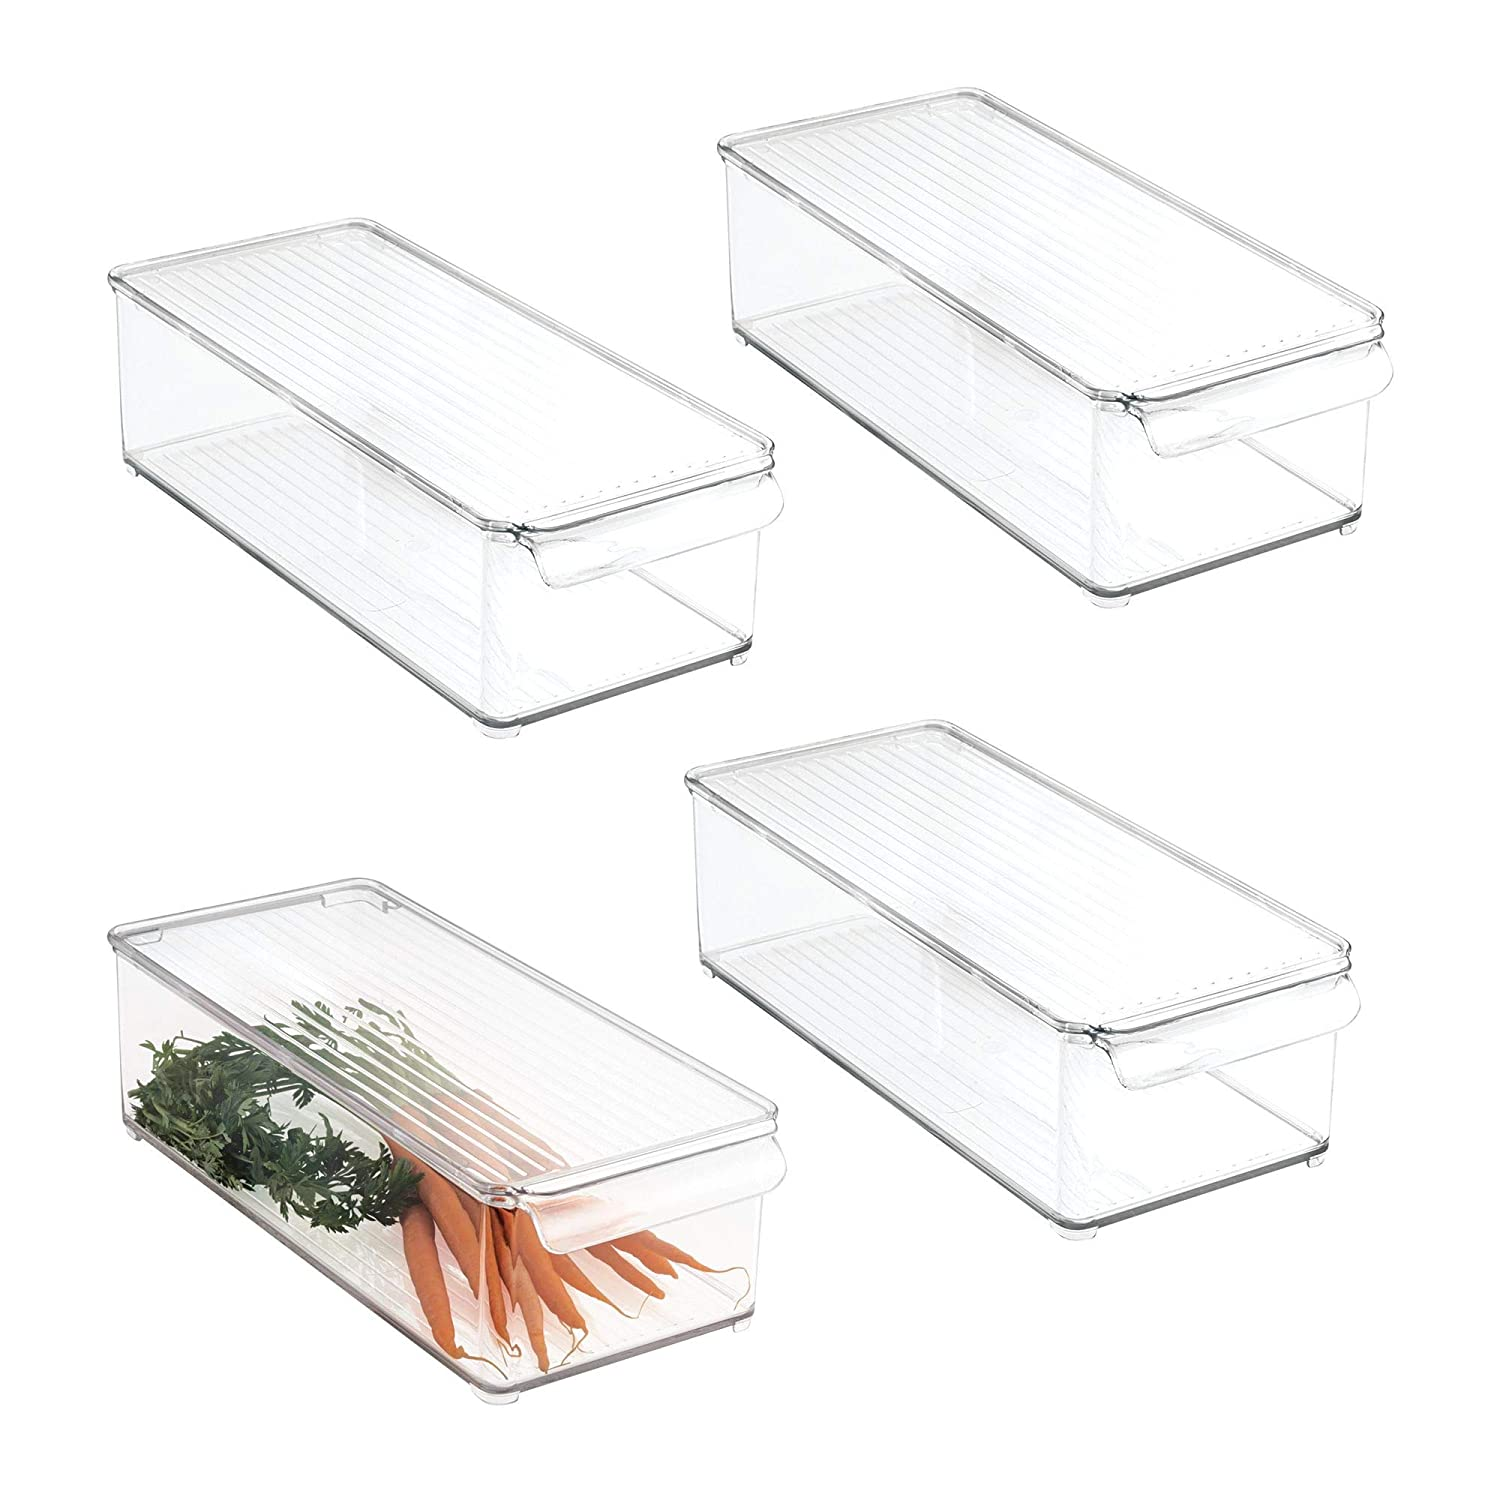 mDesign Plastic Food Storage Container Bin with Lid and Handle - for Kitchen, Pantry, Cabinet, Fridge/Freezer - Organizer for Snacks, Produce, Vegetables, Pasta - 4 Pack, Clear